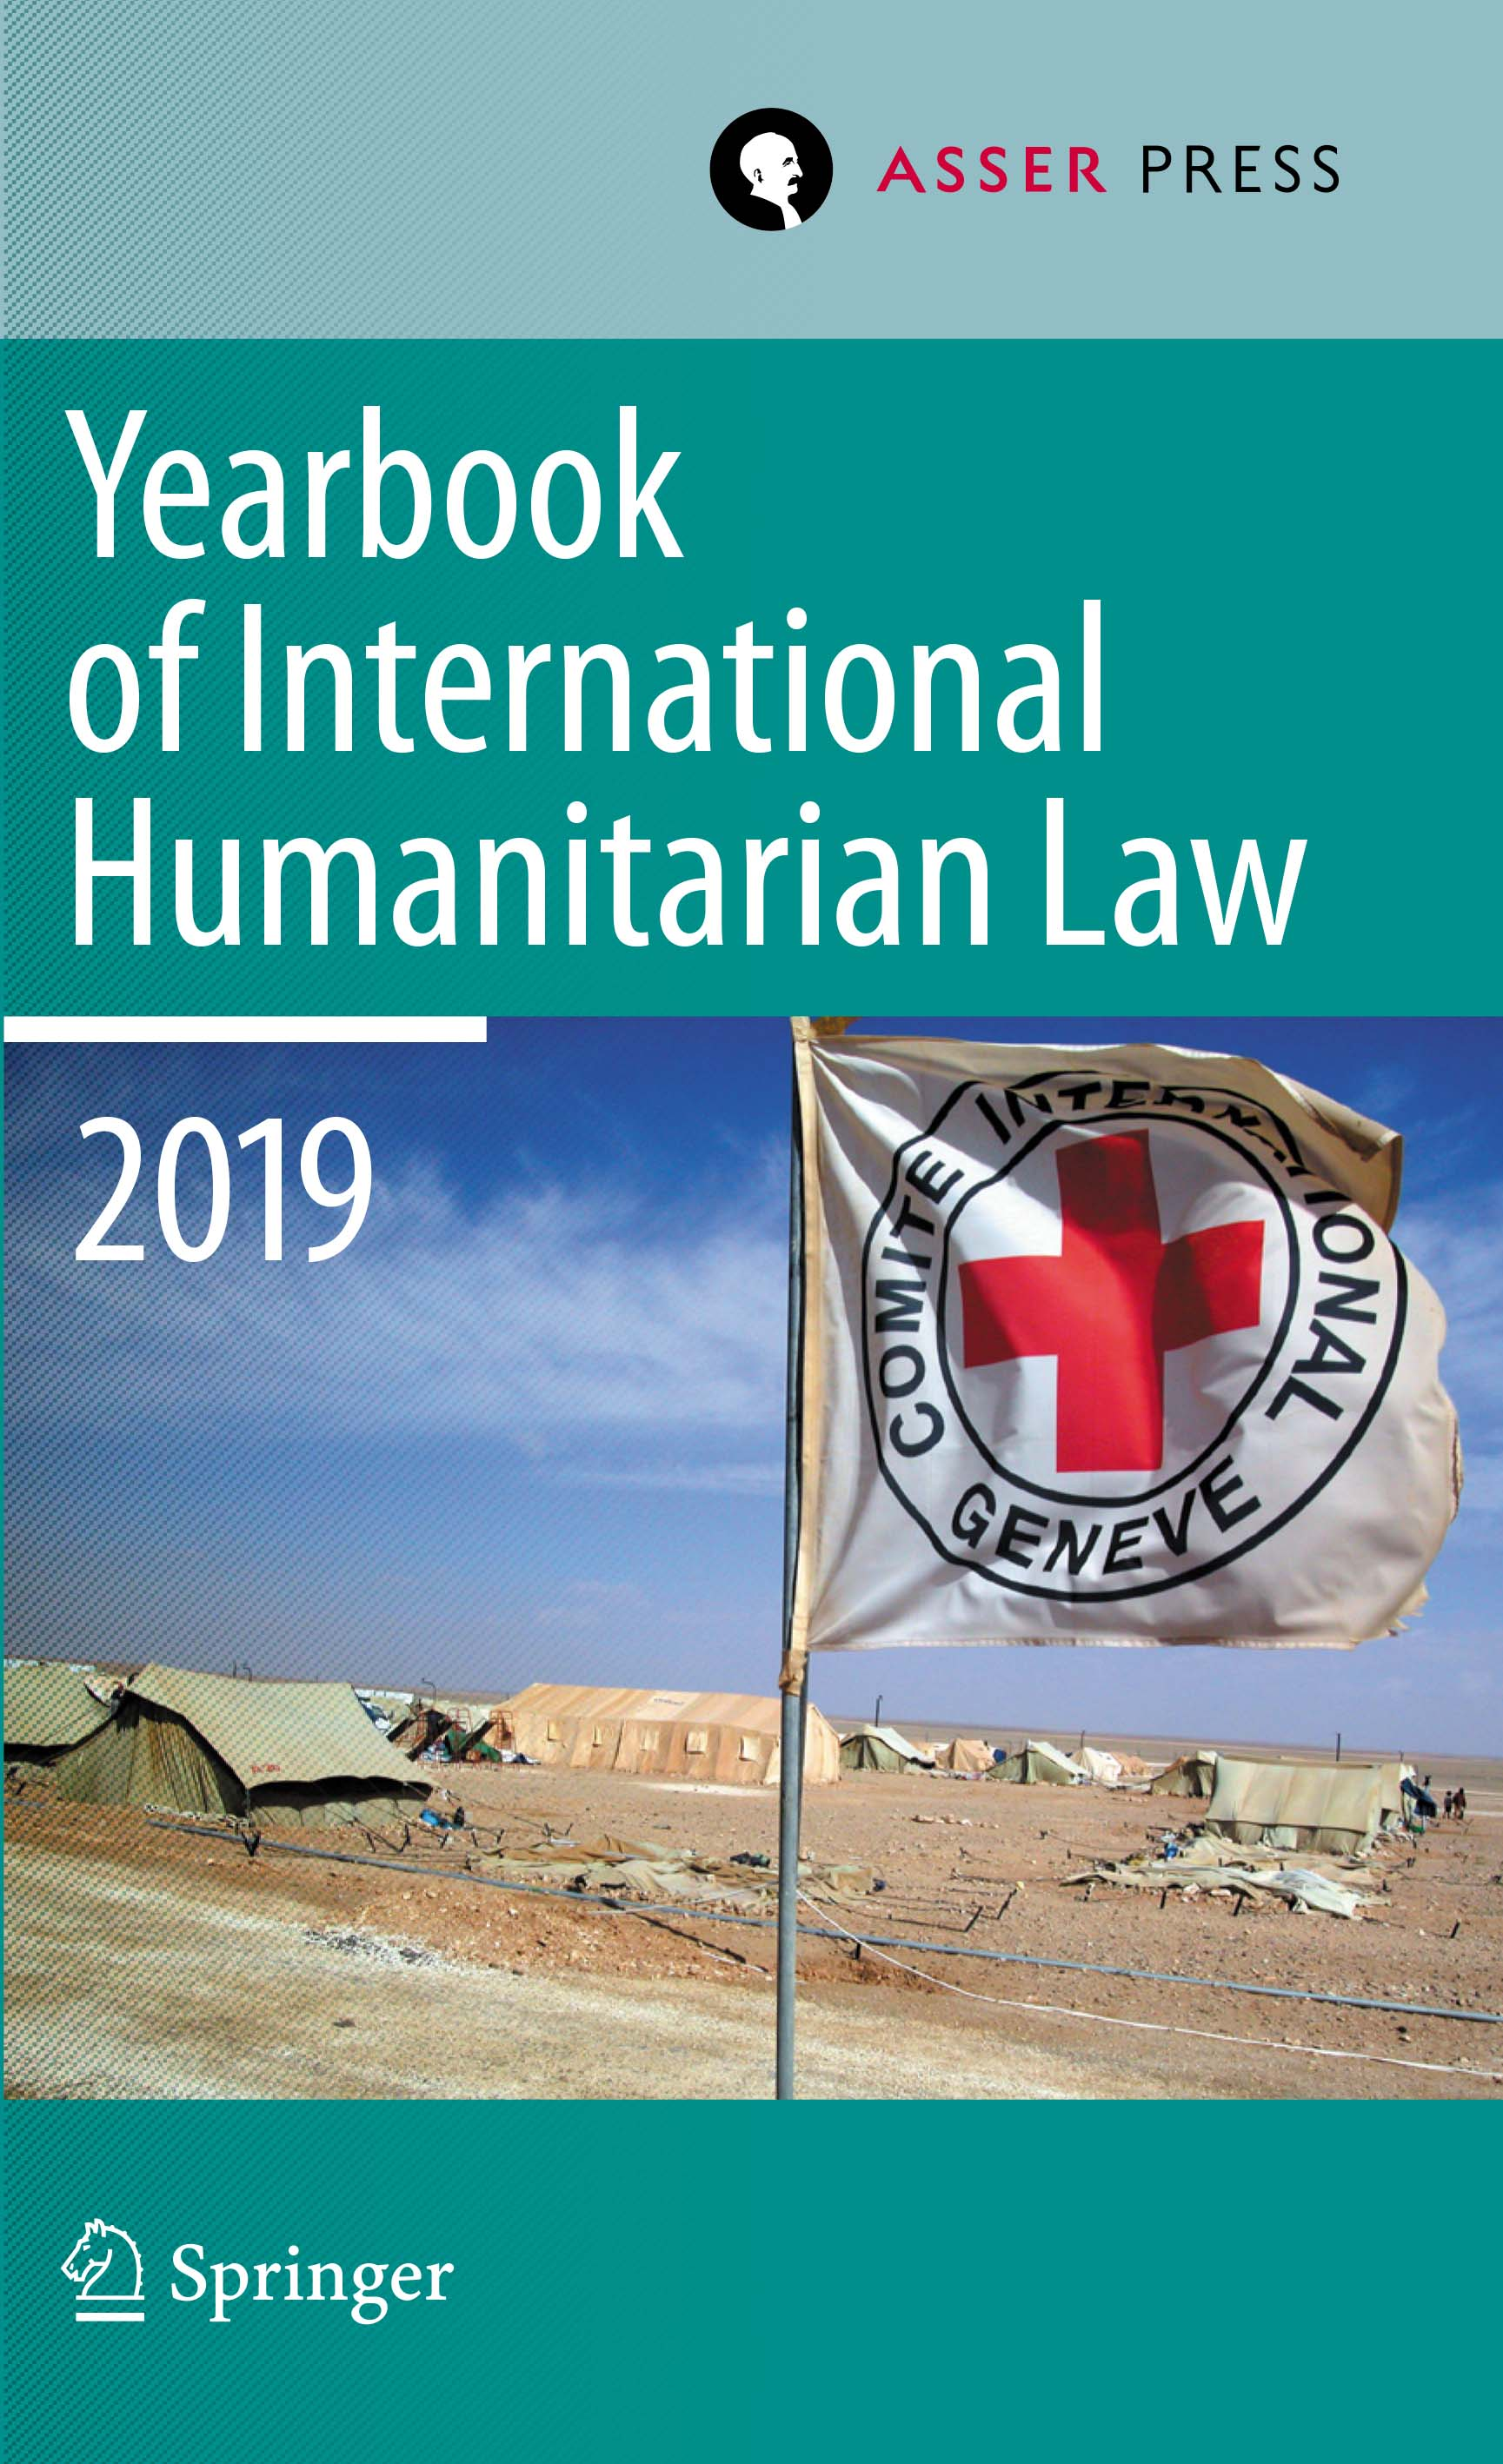 Yearbook of International Humanitarian Law, Volume 22, 2019